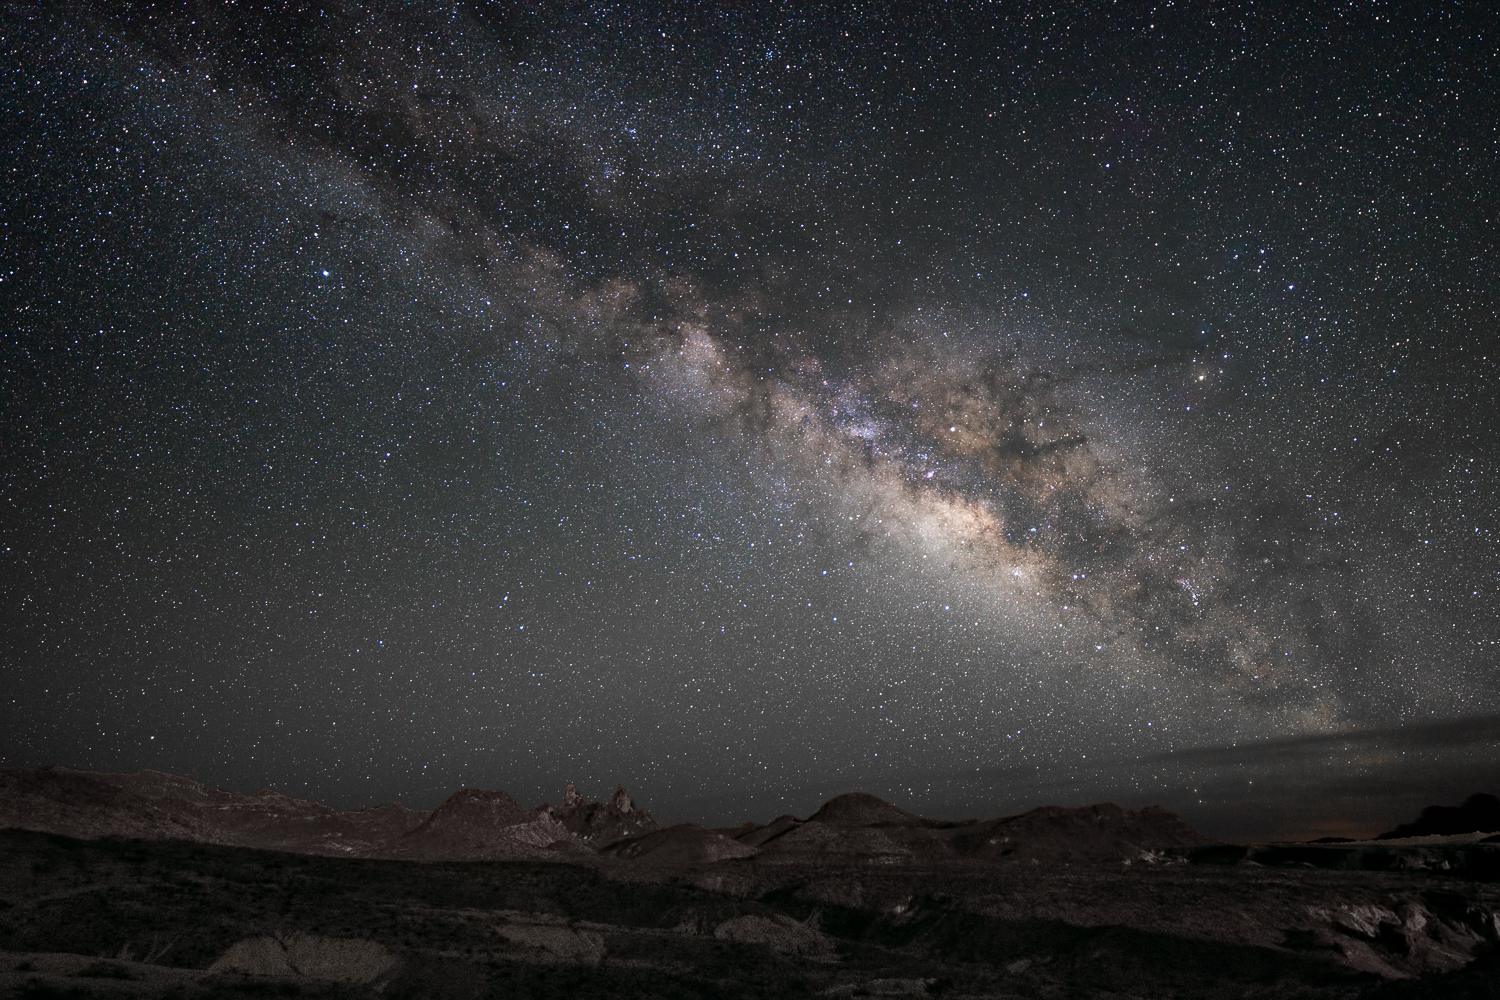 Milky Way over Mule Ears